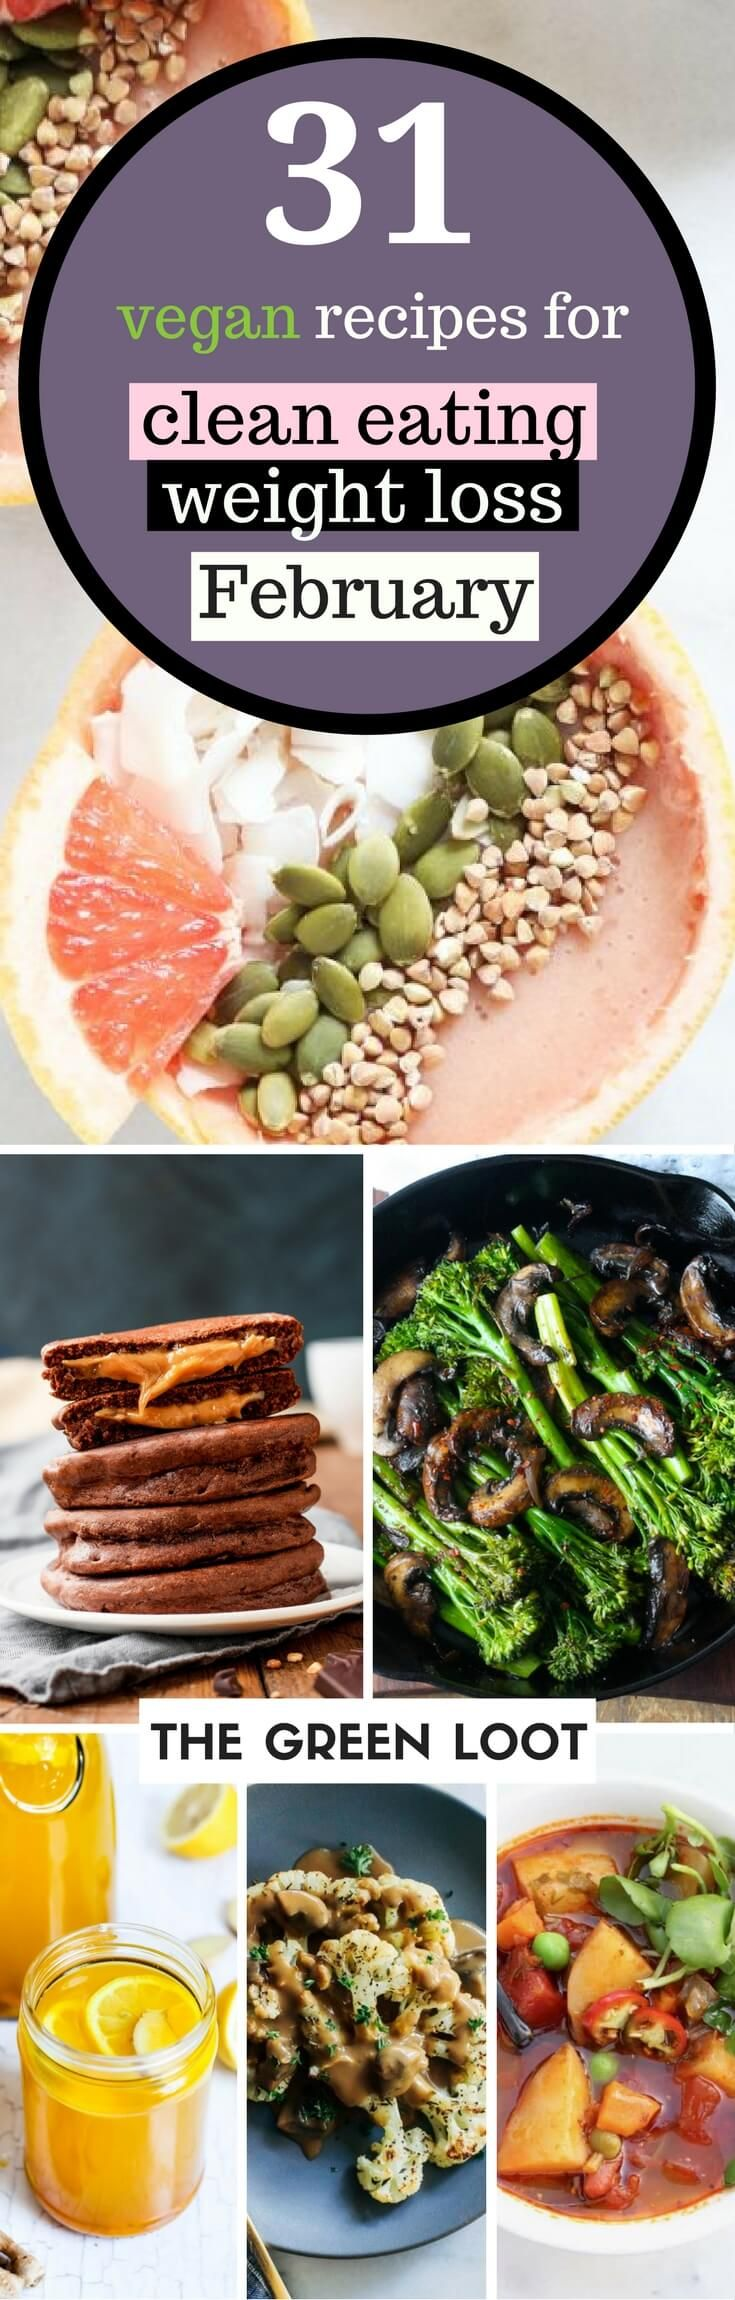 Slim down in February with these delicious vegan clean eating weight loss recipes! | These healthy breakfast, lunch, snack and dinner recipes are perfect for meal prep or a diet challenge. | The Green Loot #vegan #cleaneating #weightloss